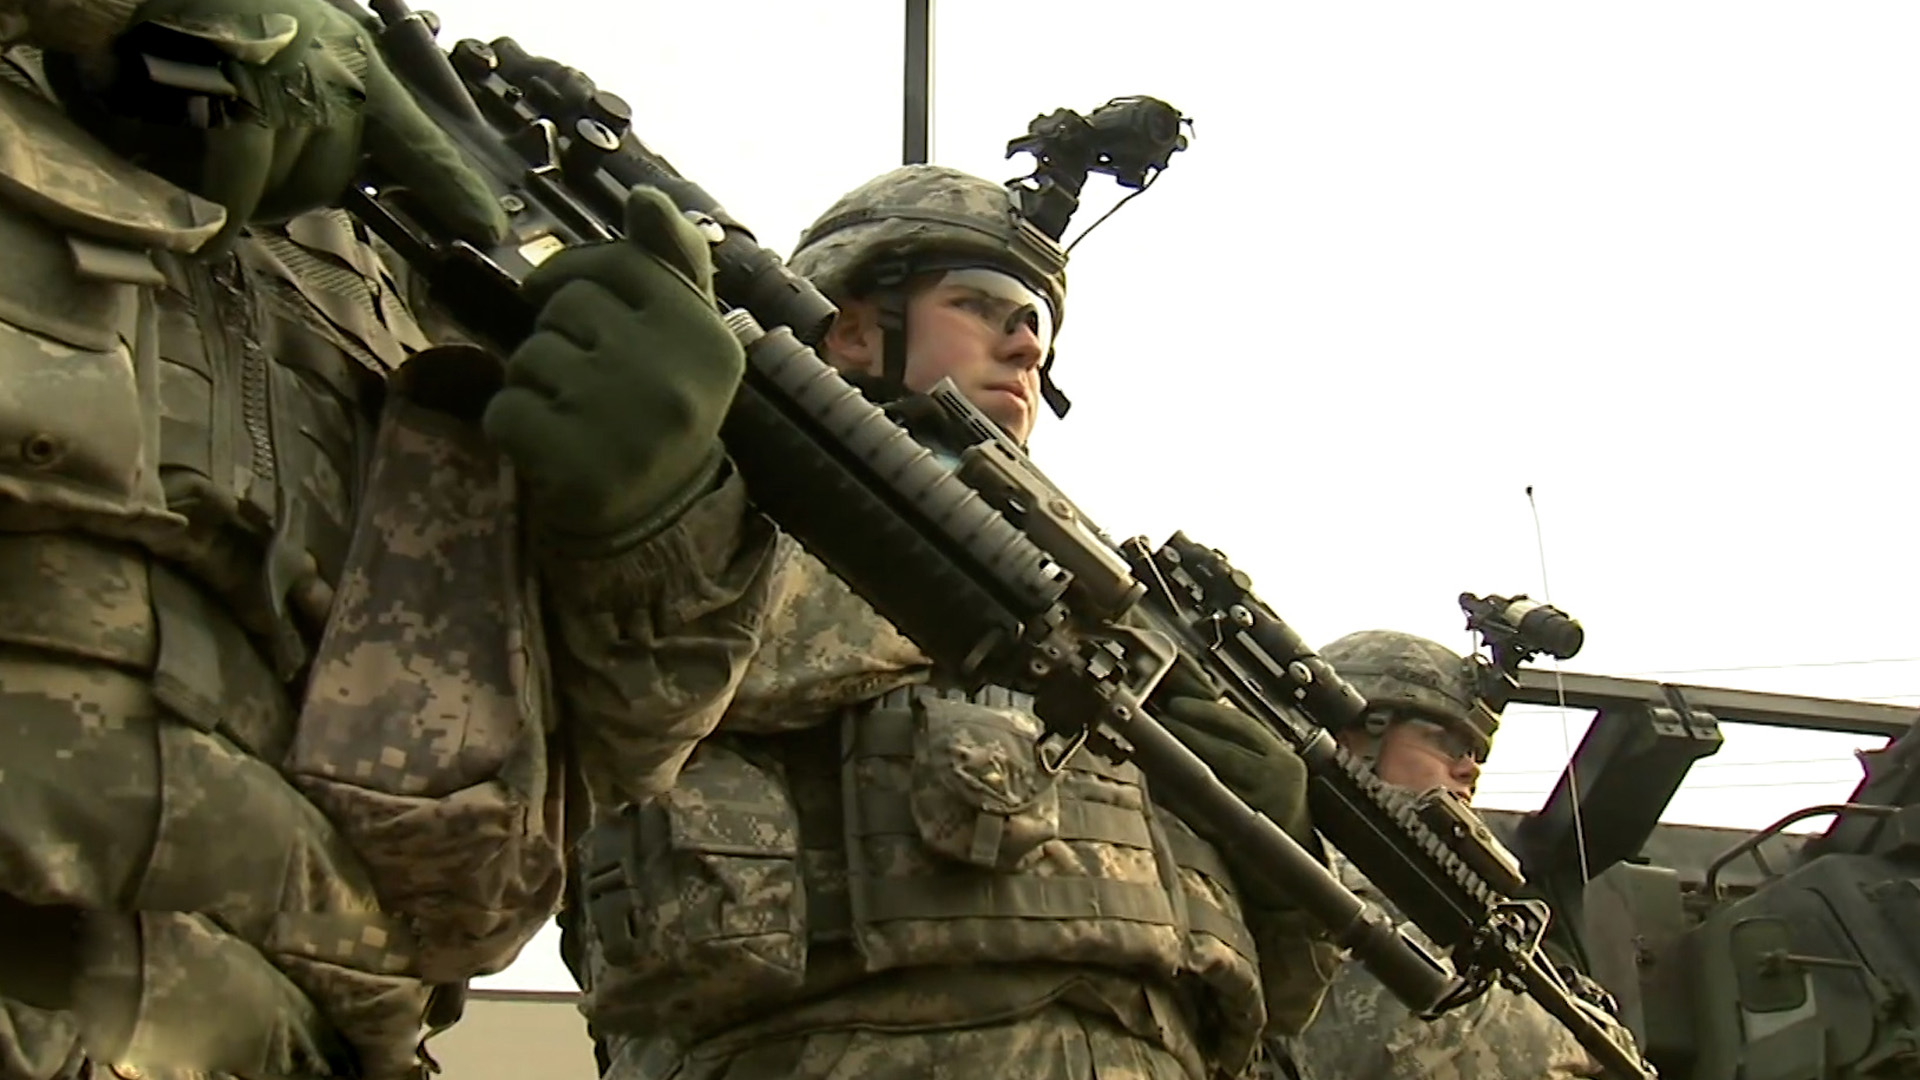 Ep.120 The U.S. reconsiders sending troops to nations using Chinese 5G tech